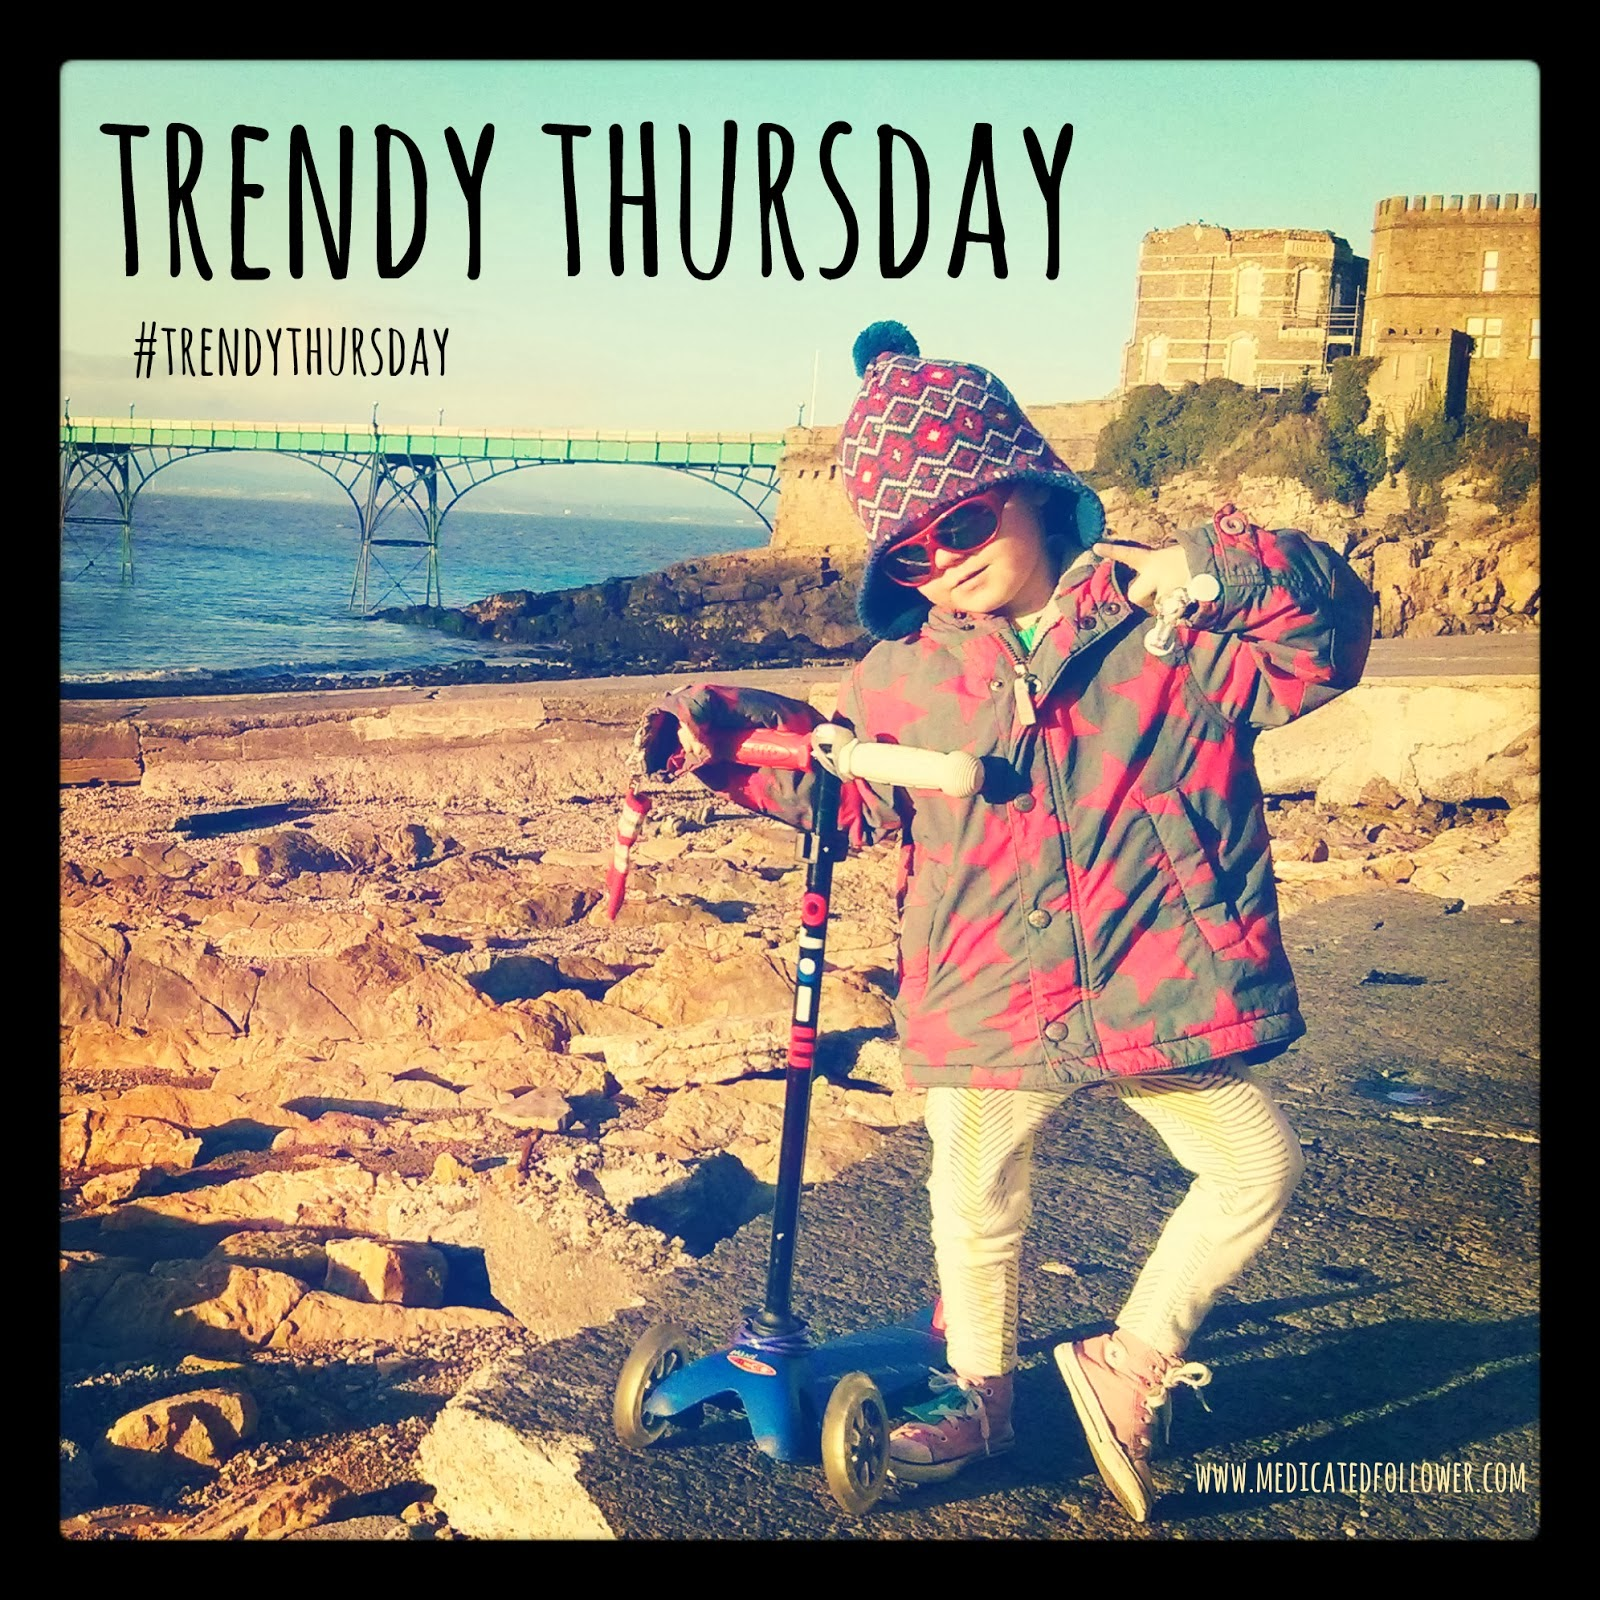 http://www.medicatedfollower.com/2014/02/trendy-thursday.html